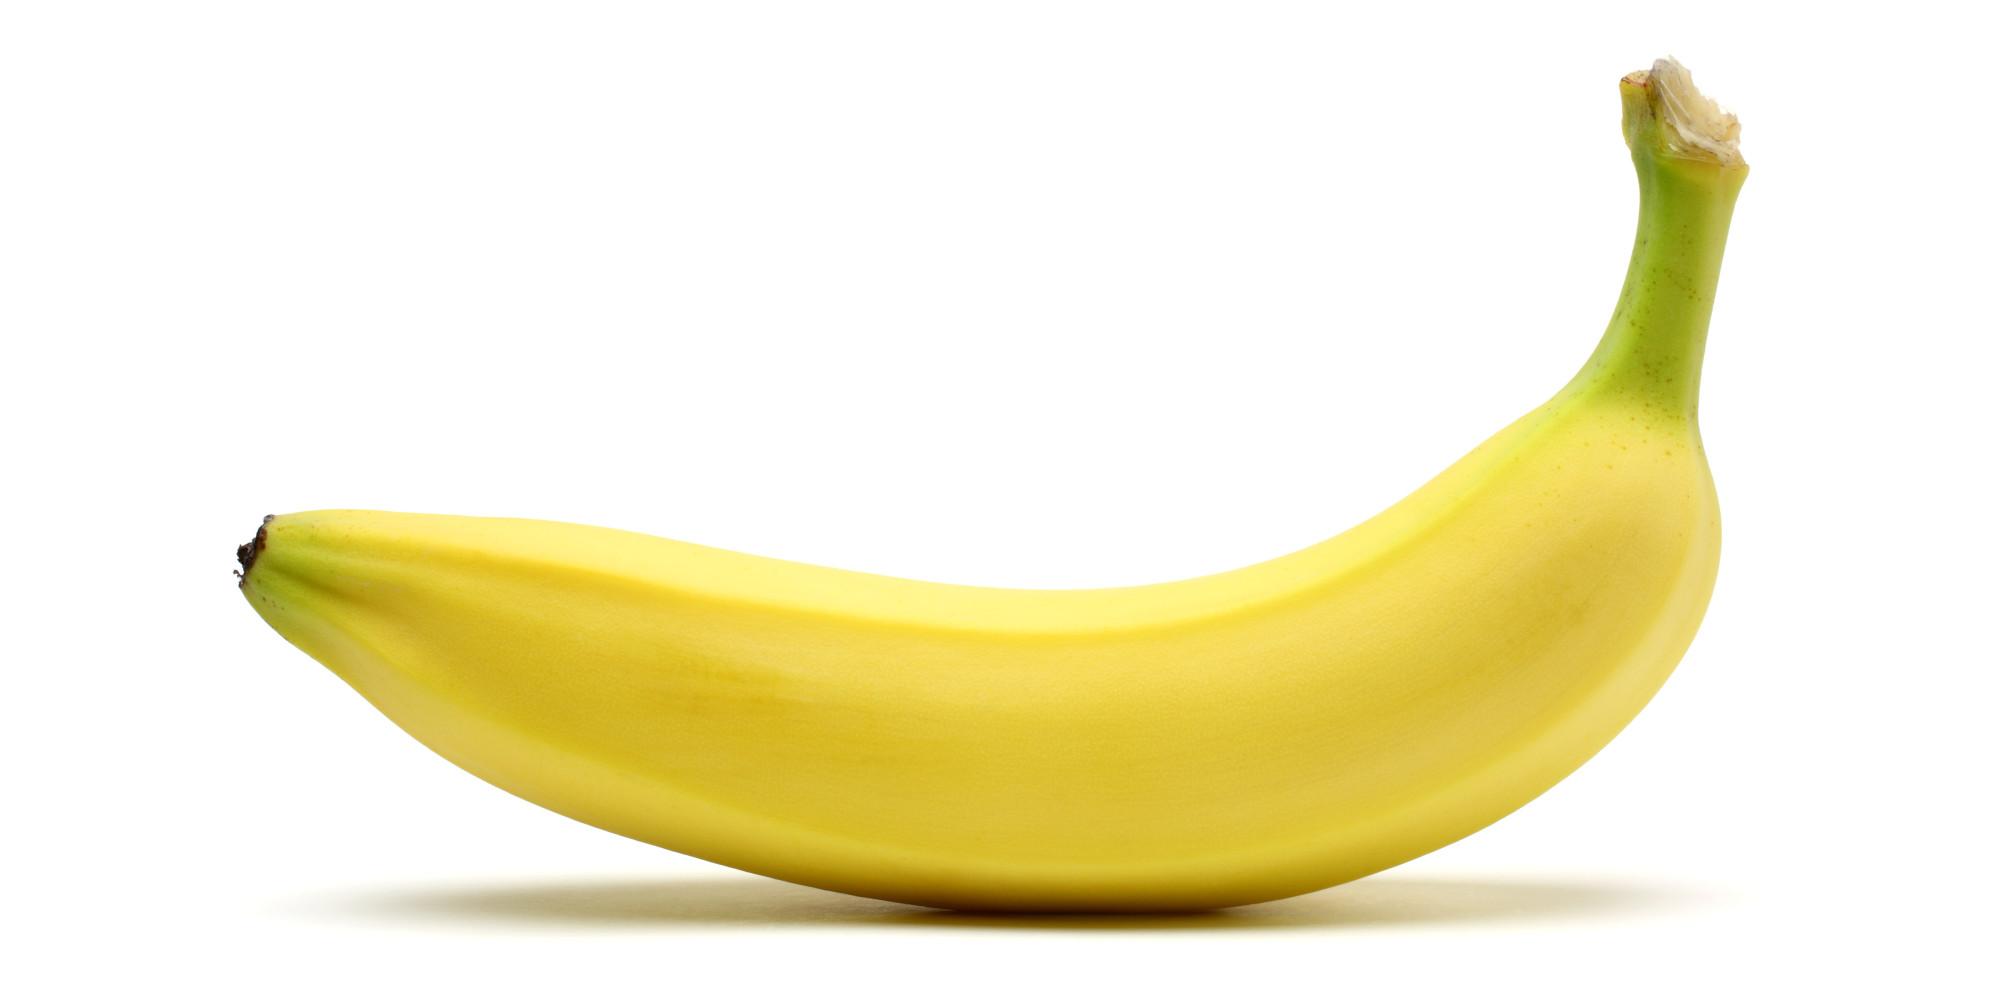 Recent Posts. Banana Site! Banana Nutrition; 7 Easy Ways to Enjoy Bananas for Breakfast; Does anyone know any good banana recipes??? and I mean really good ones?